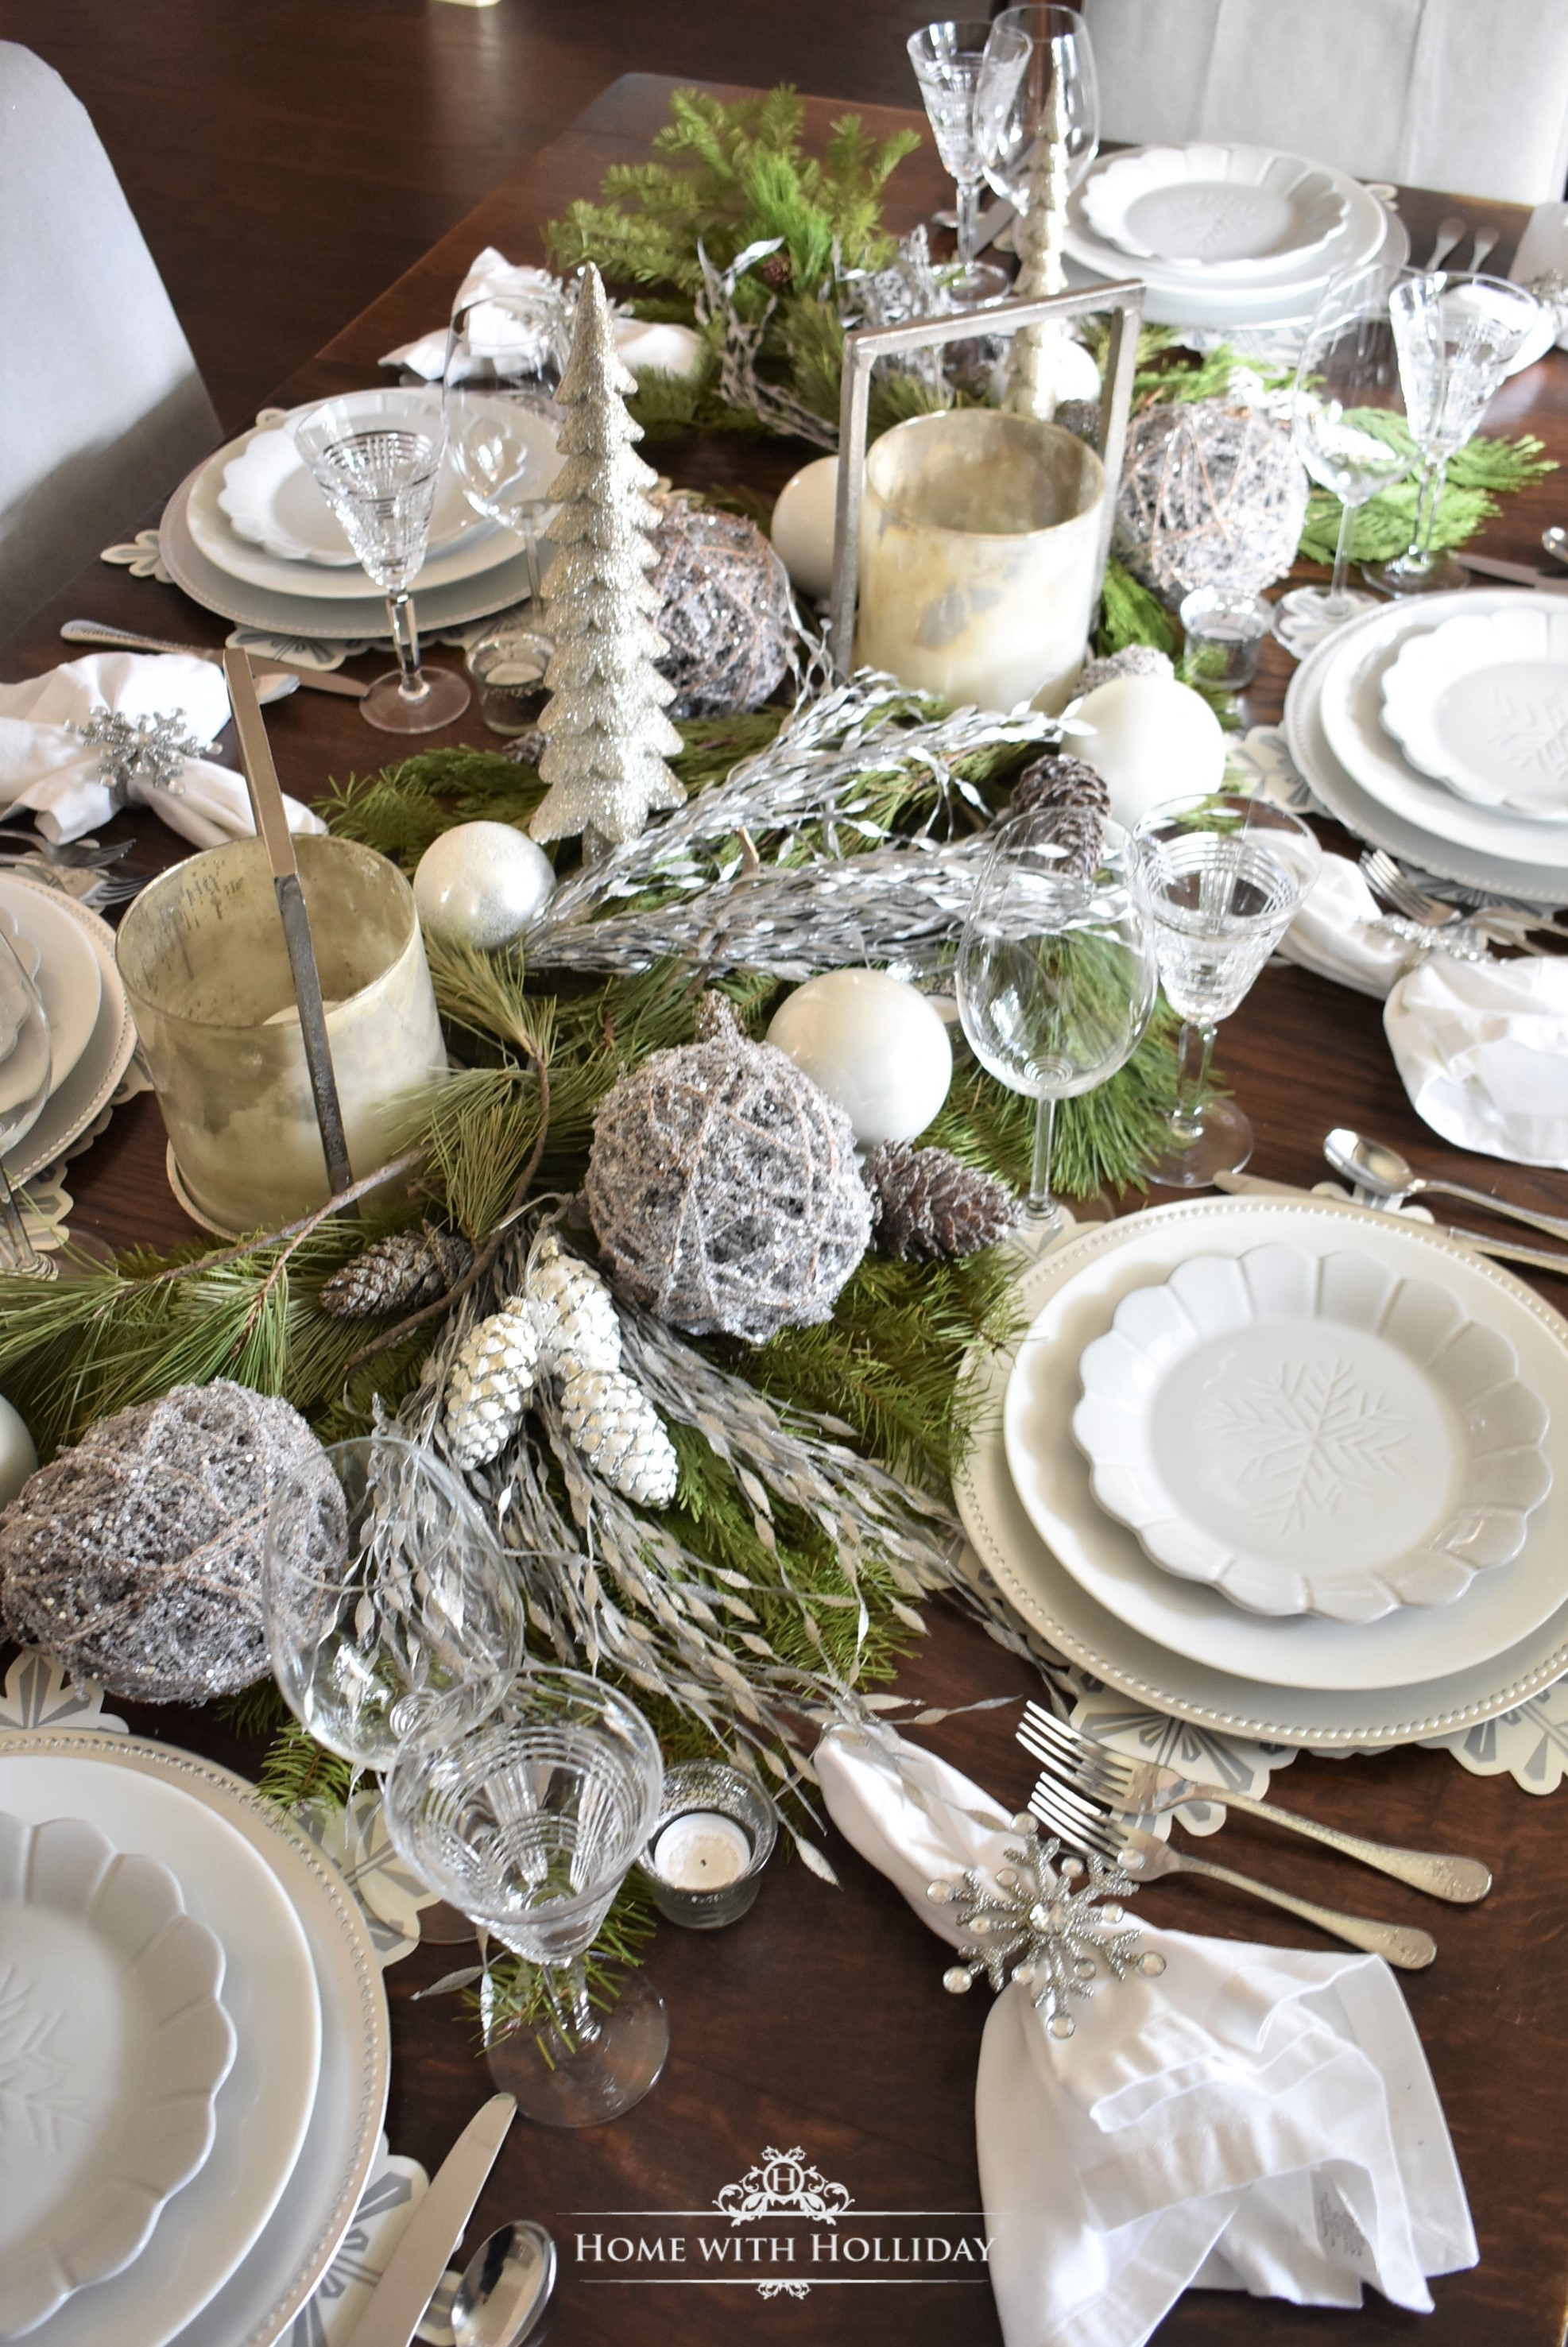 My Christmas Home Tour- Centerpiece for my Winter White Snowflake Christmas Centerpiece - Home with Holliday